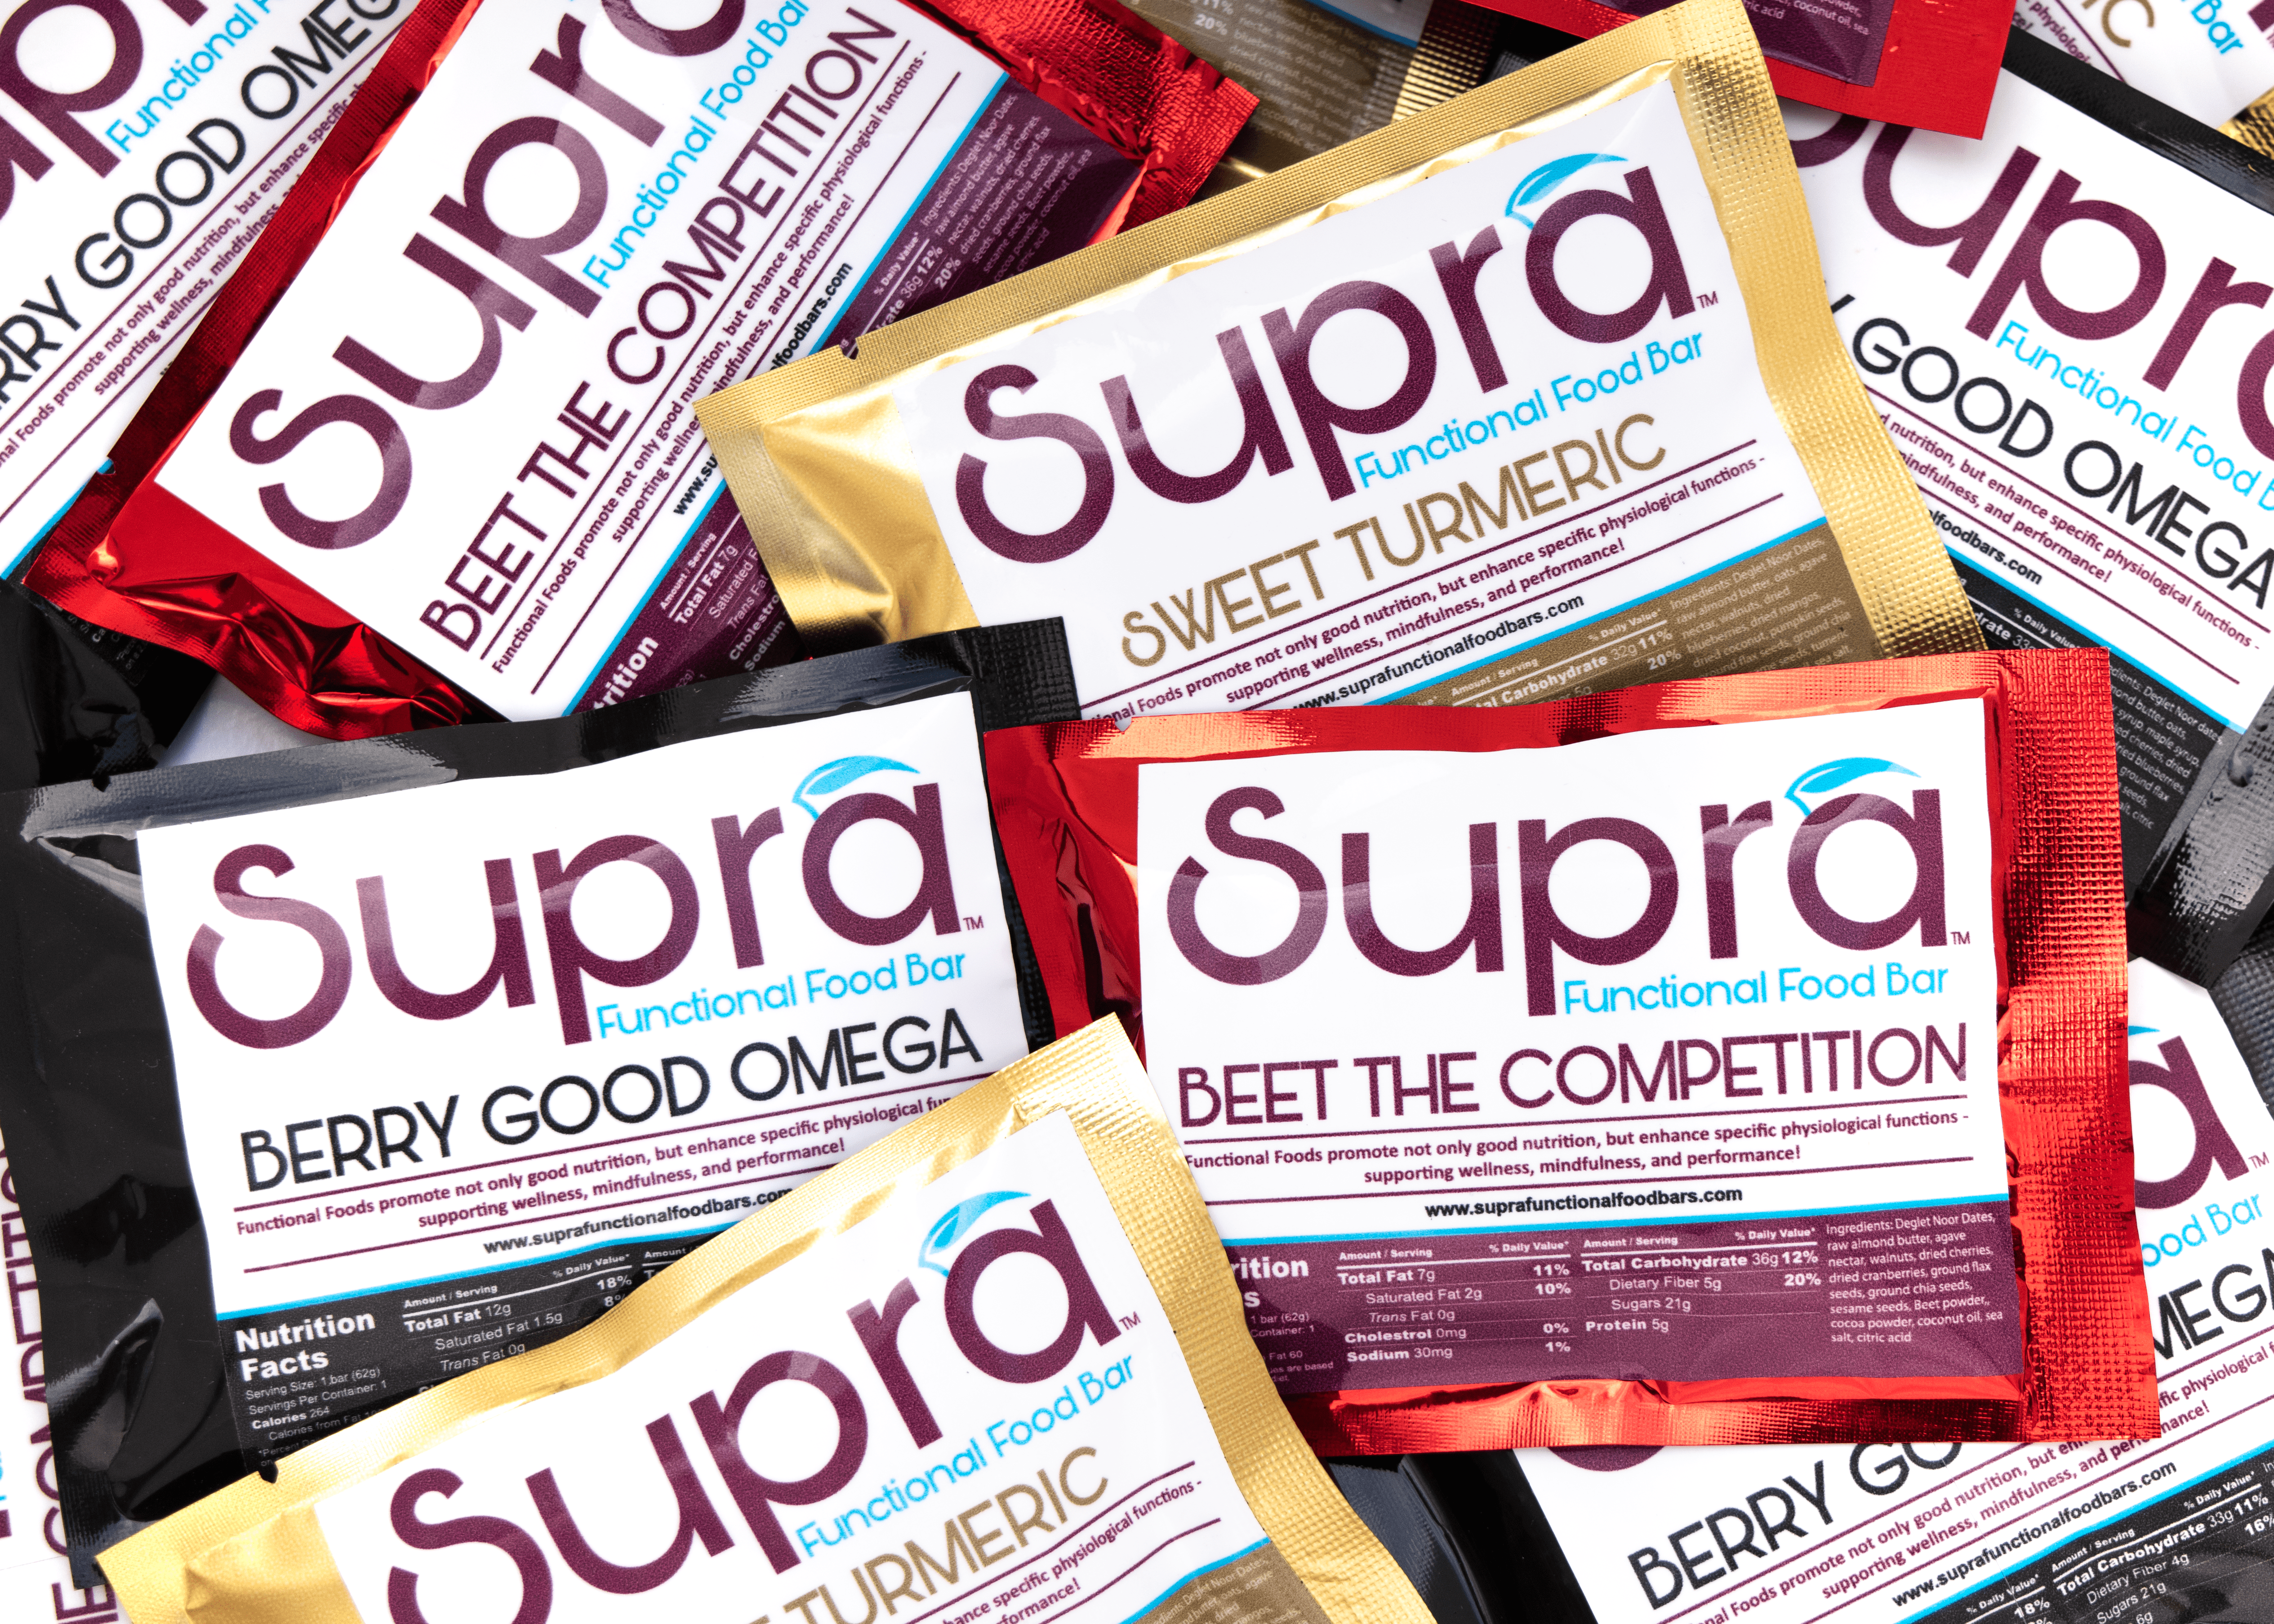 Supra Functional Food Bars – Beet the Competition